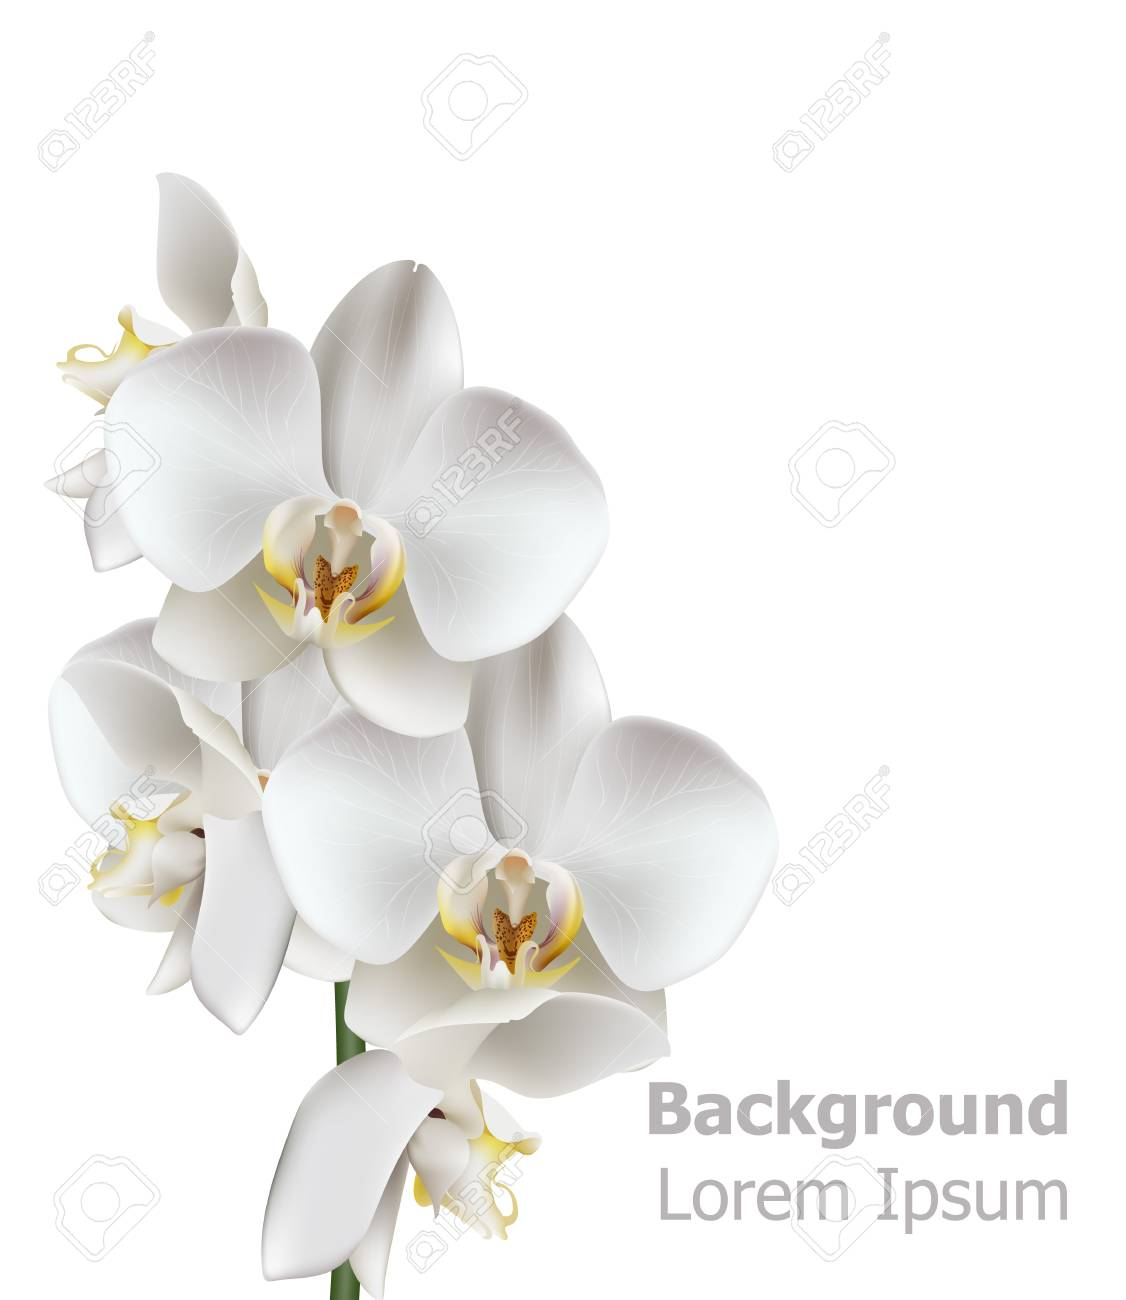 Realistic White Orchid Flowers Vector 3d Illustration Isolated